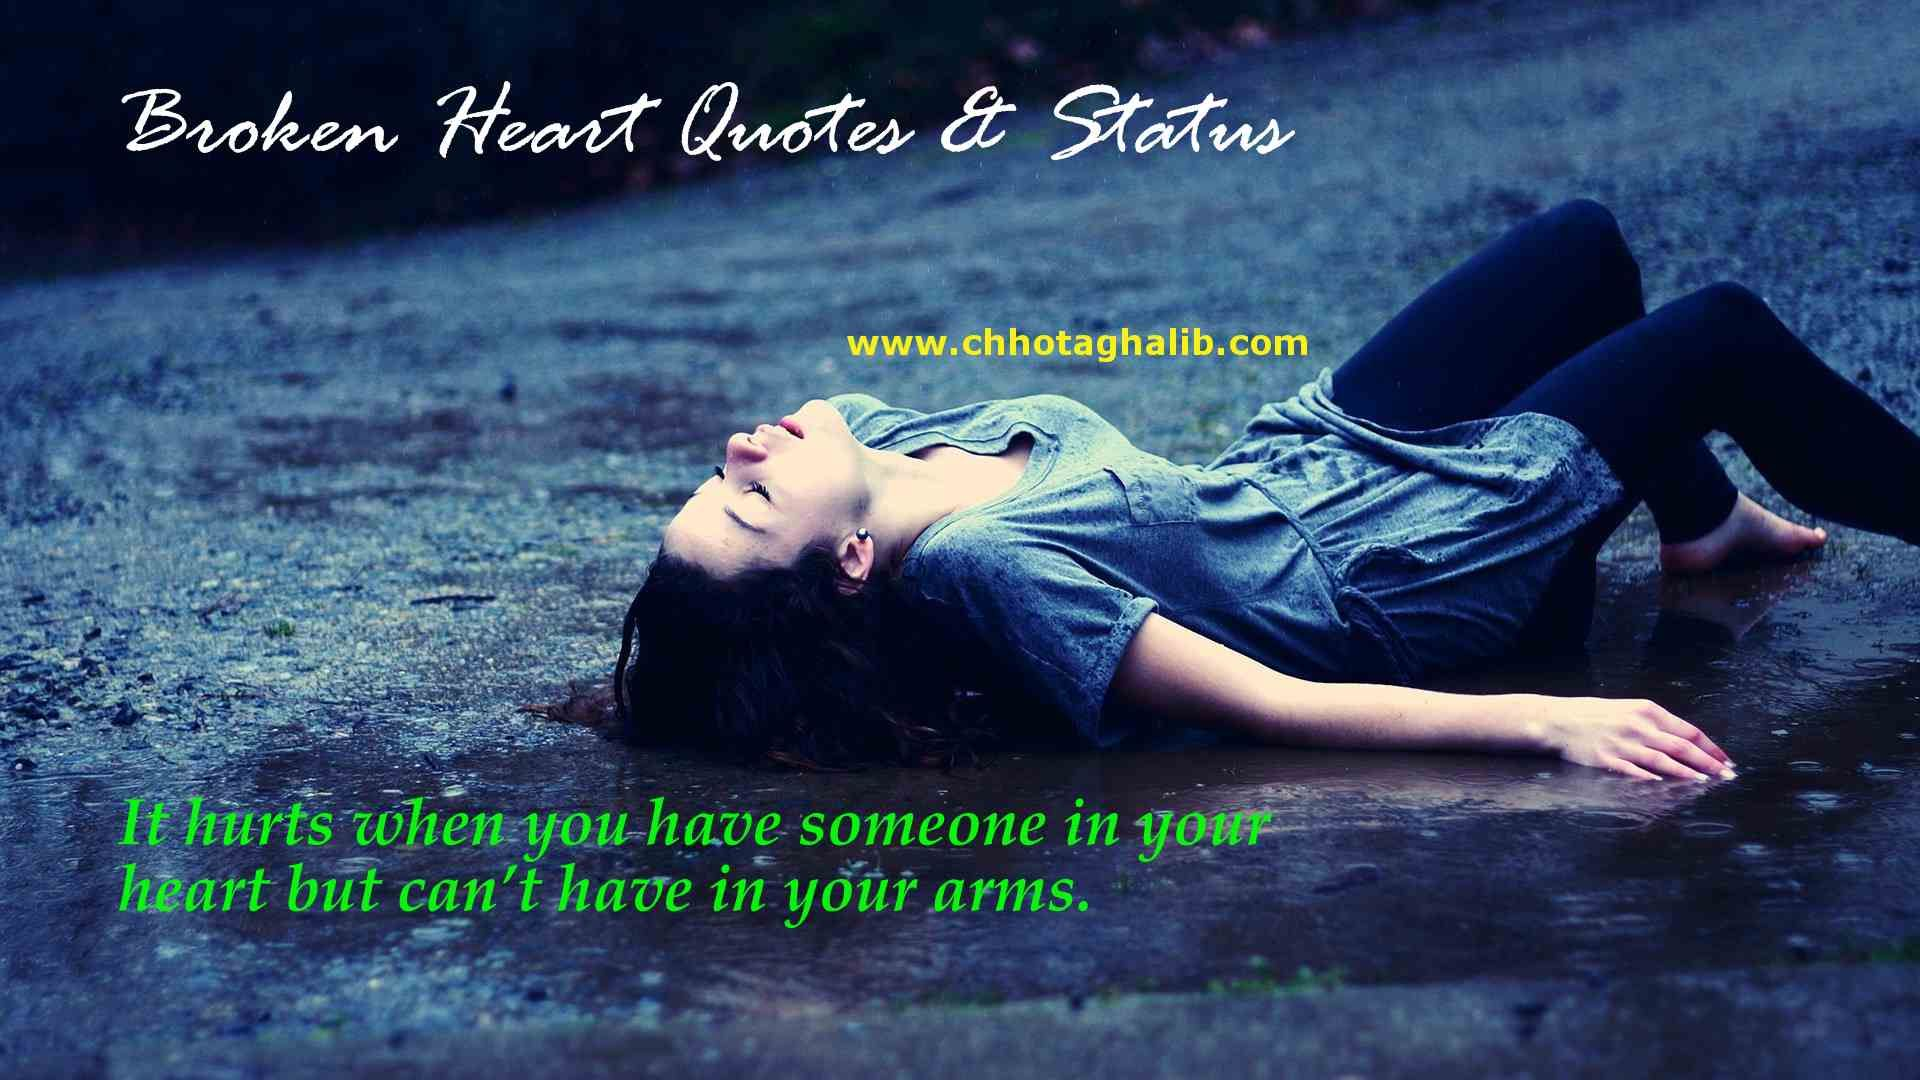 Here We Are Creating A Great Collection Of 140 Broken Heart Quotes Status Hope You Will Enjoy By Reading And Sharing With Your Friends